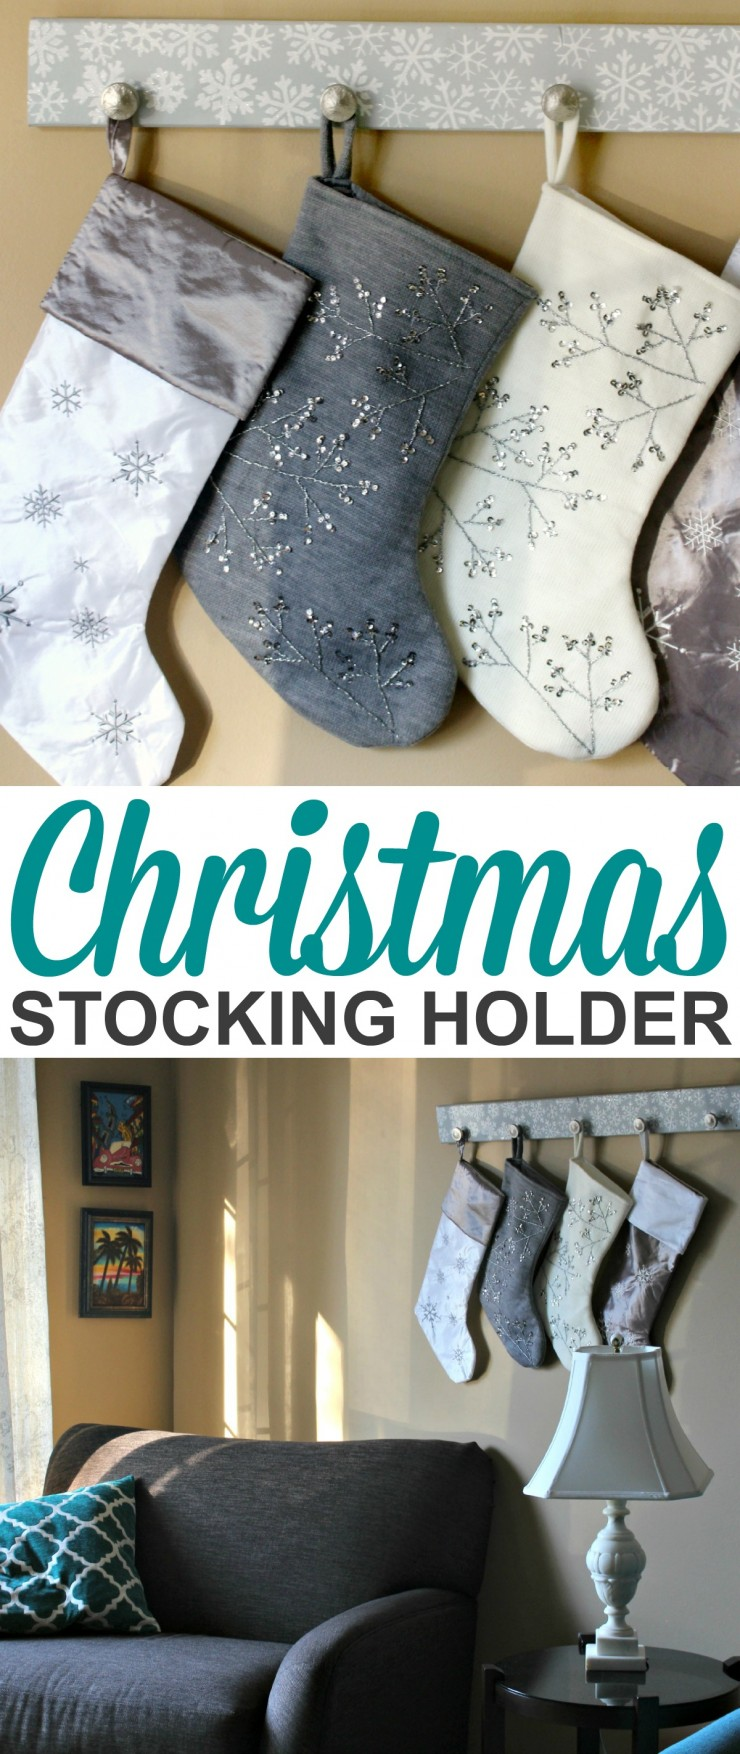 This DIY Christmas Stocking Holder tutorial is an easy holiday decor idea for those without a mantel!